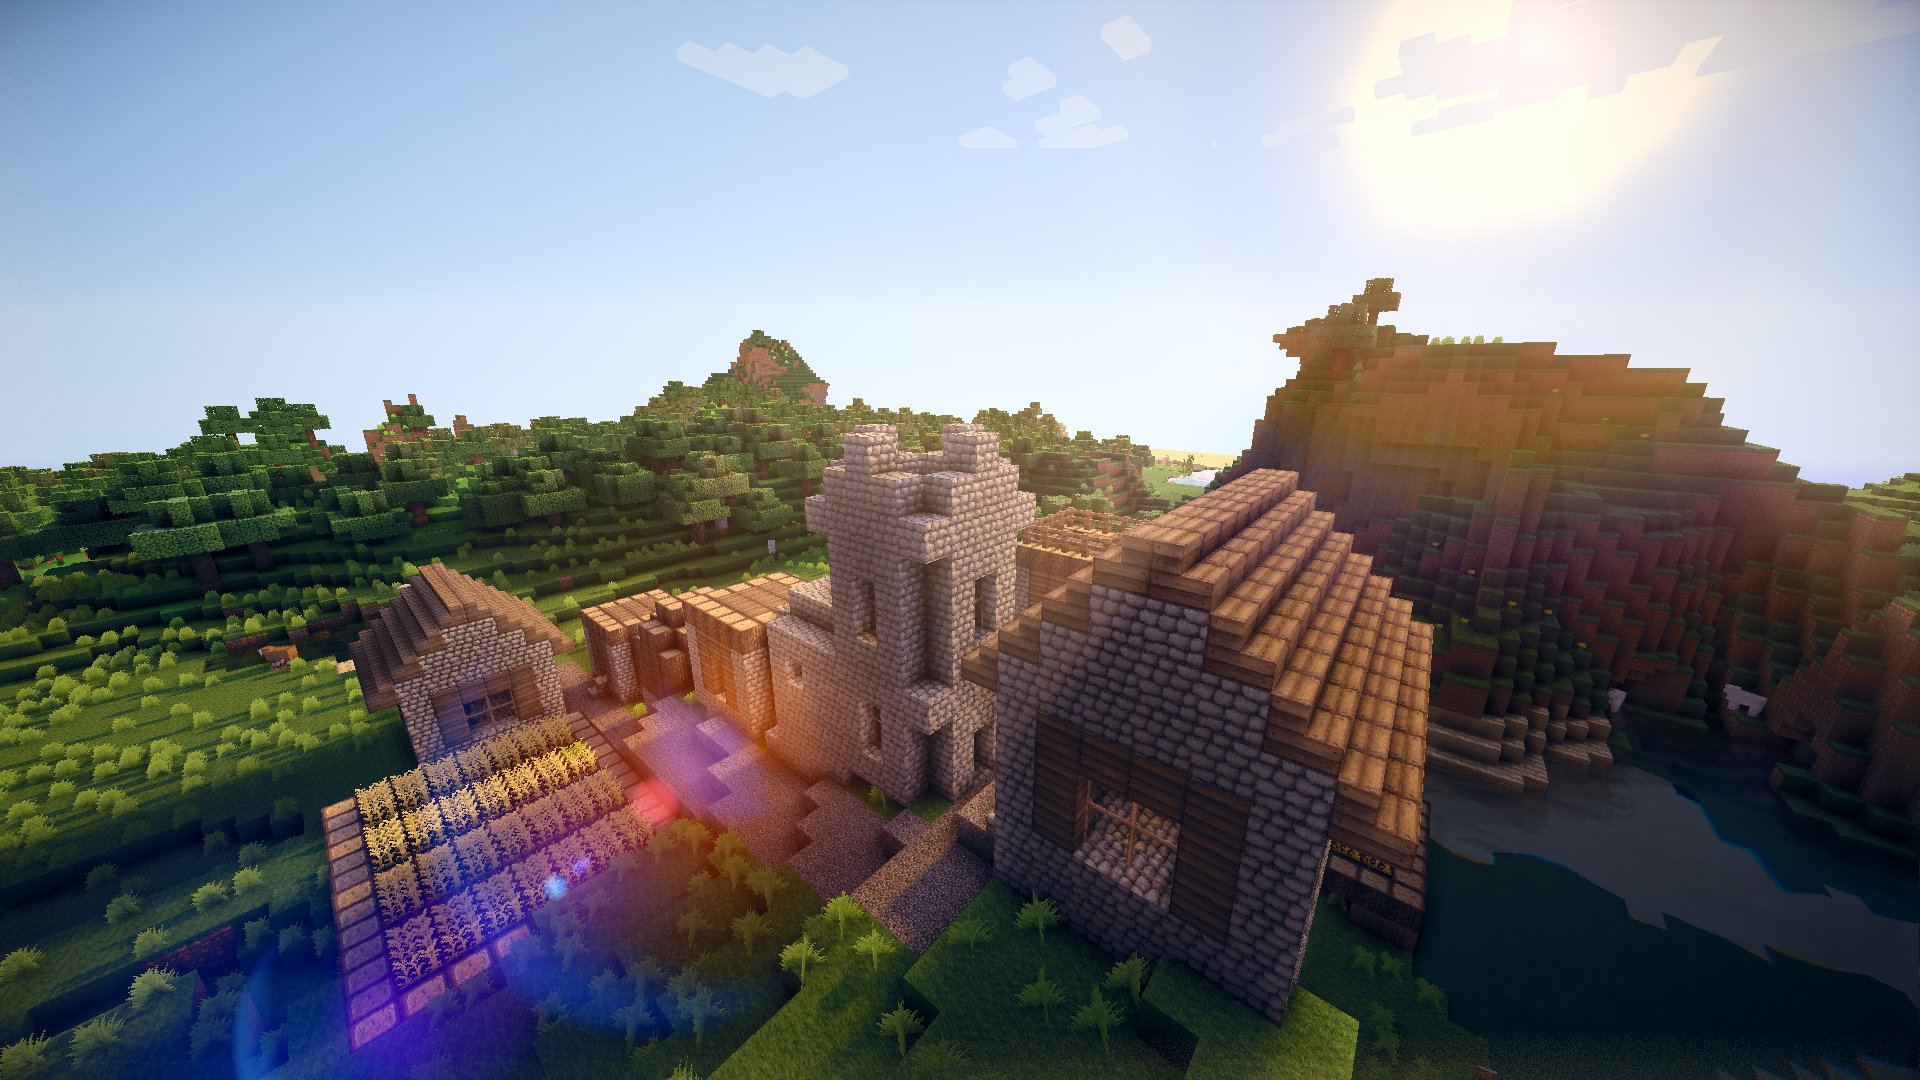 http://minecraft-forum.net/wp-content/uploads/2013/02/da7d5__Chocapic13-Shaders-Mod-2.jpg